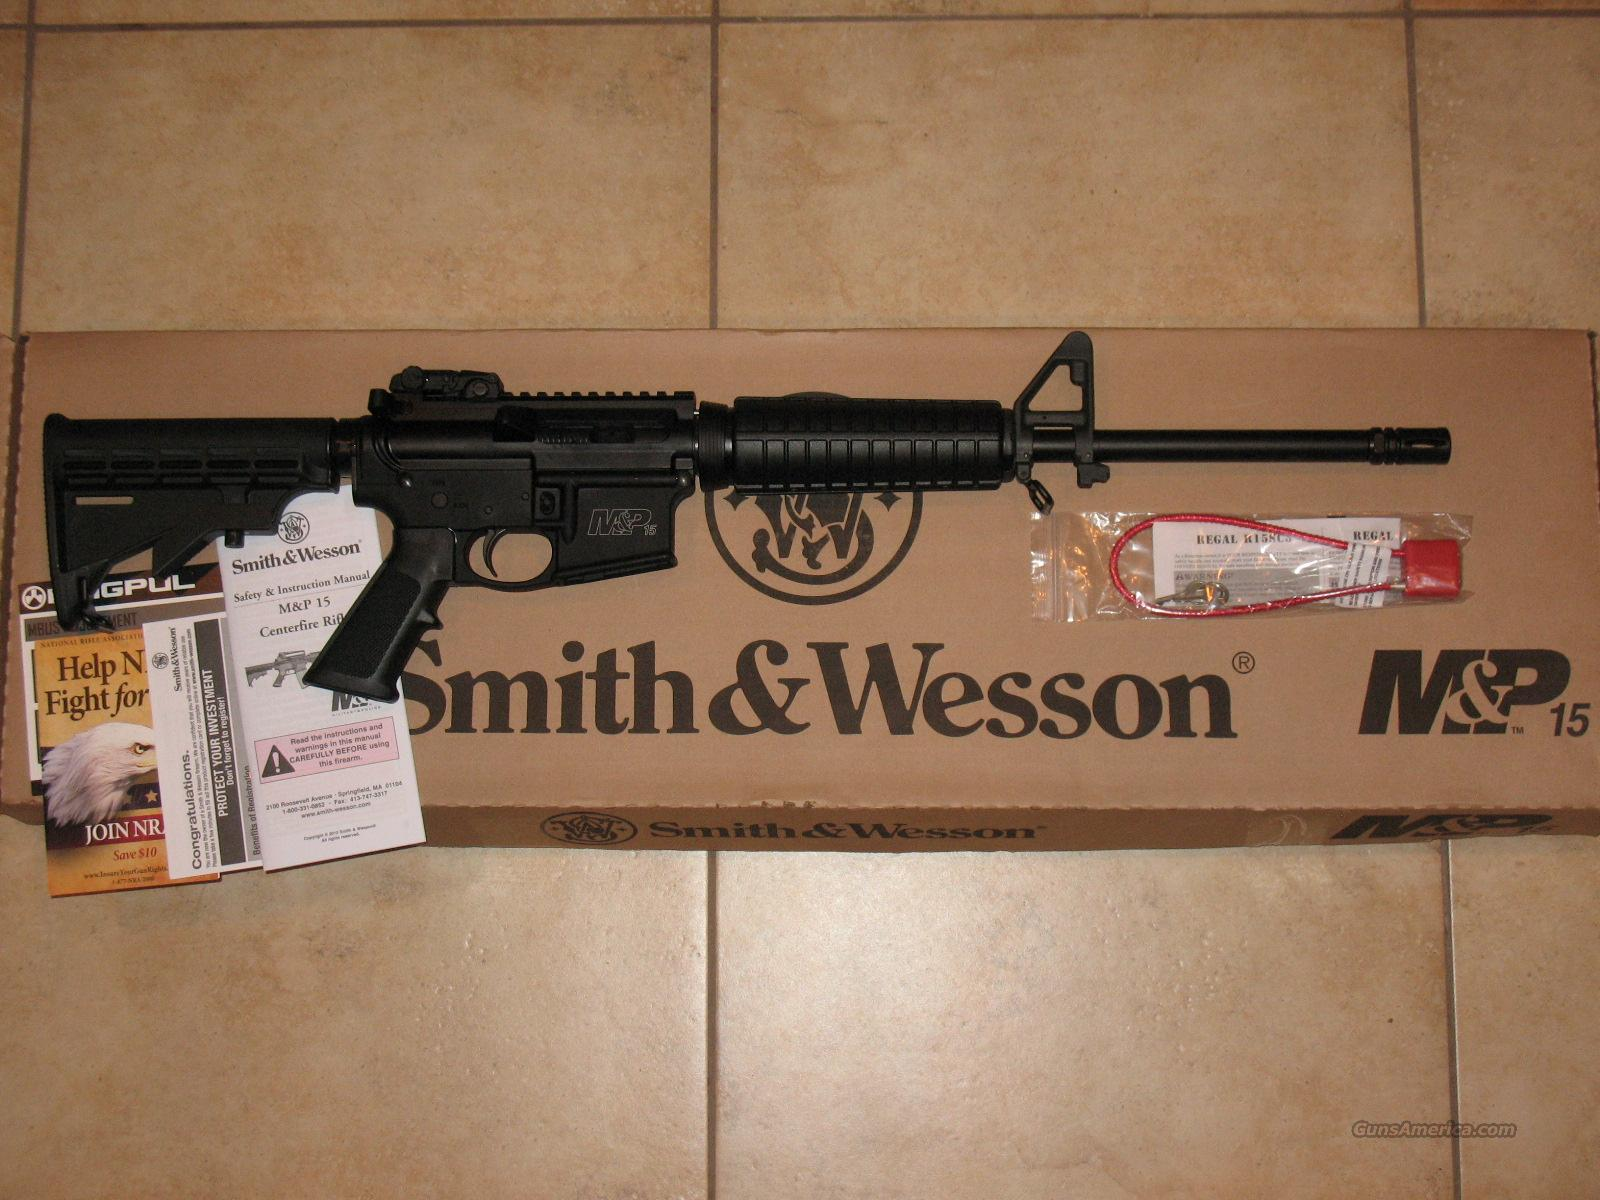 New Smith & Wesson M&P AR15 Carbine 5.56 S&W  Guns > Rifles > AR-15 Rifles - Small Manufacturers > Complete Rifle